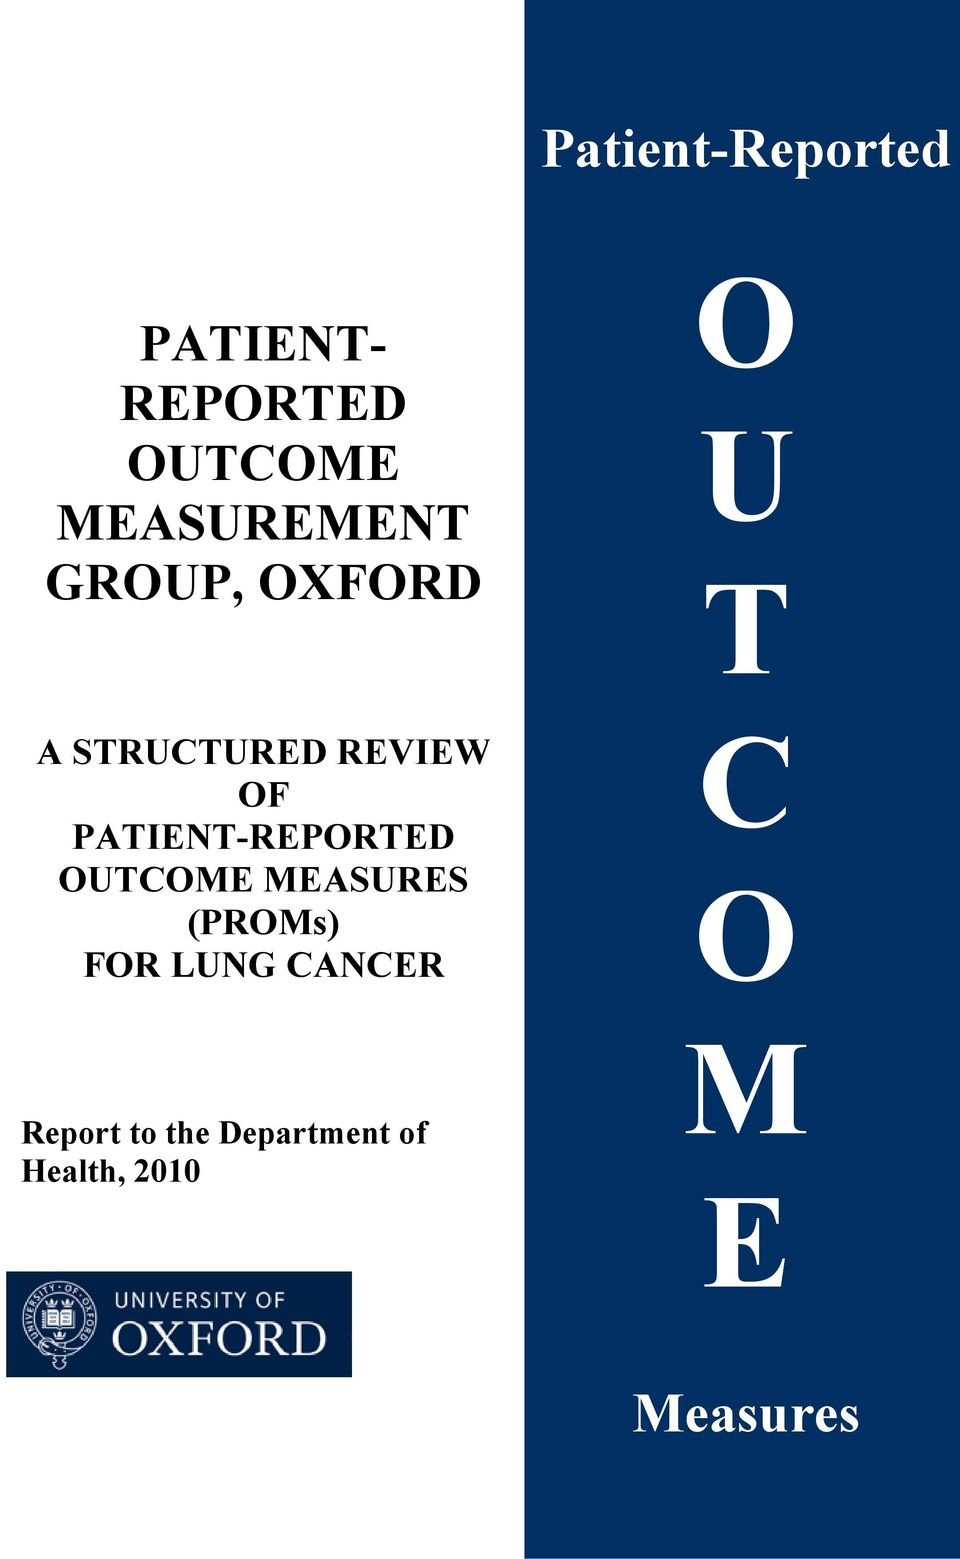 OF PATIENT-REPORTED OUTCOME MEASURES (PROMs) FOR LUNG